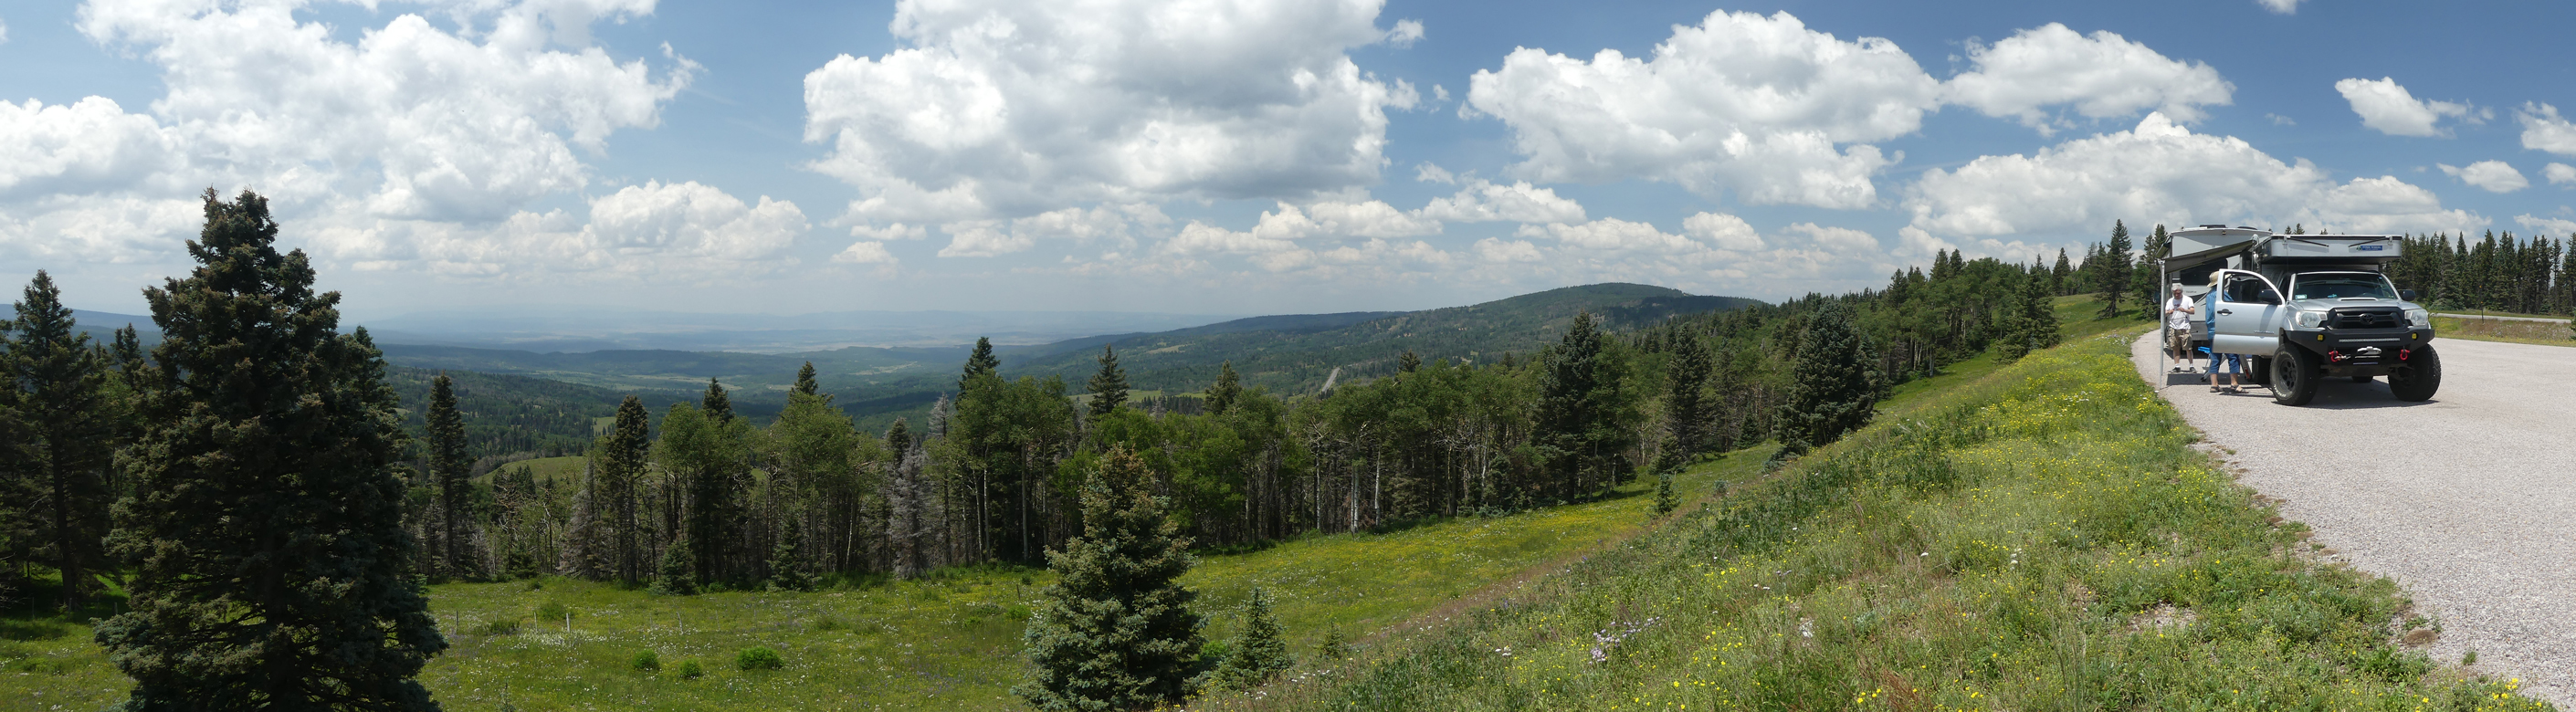 picnic at a scenic overlook